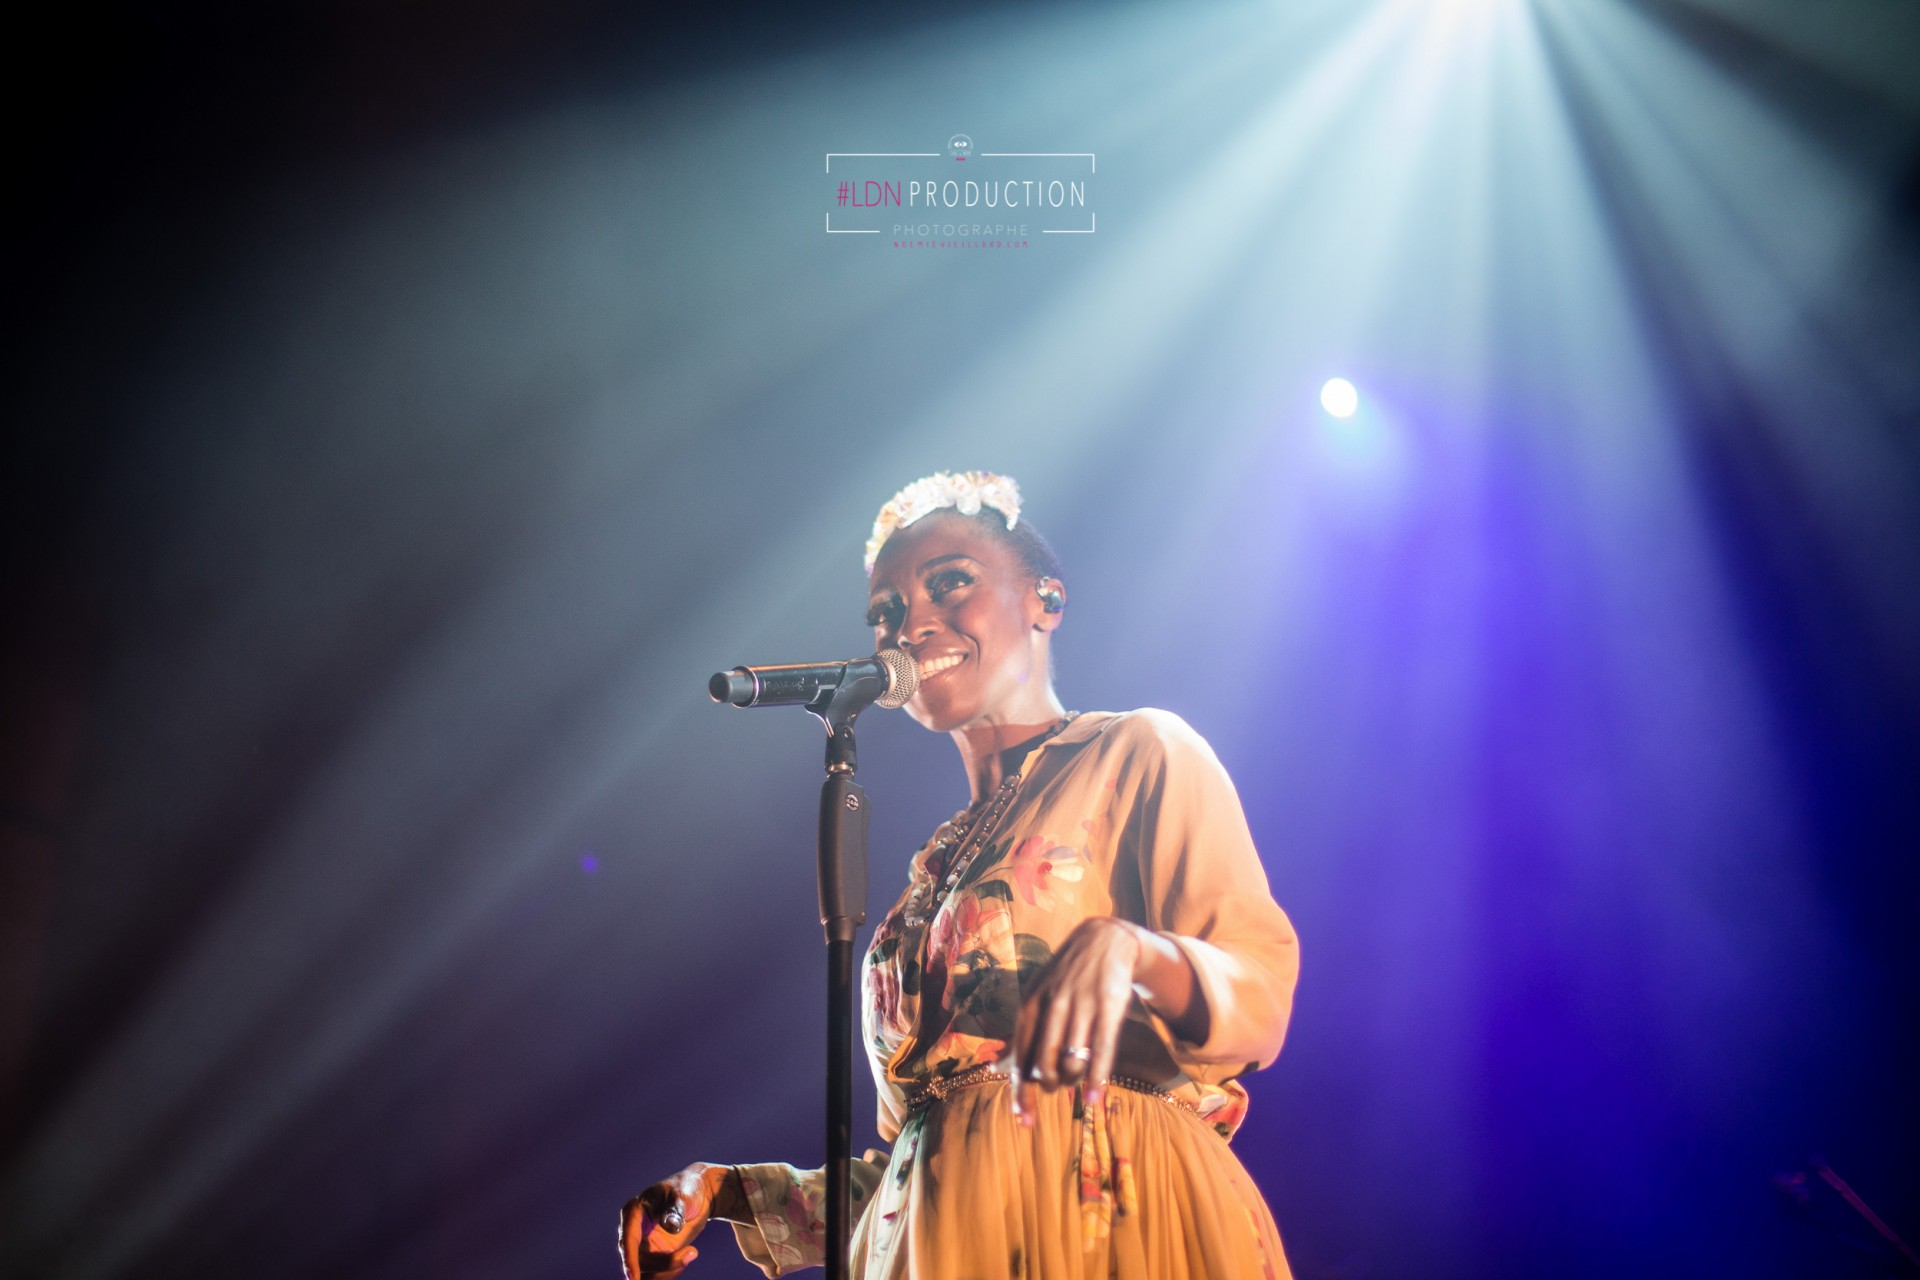 photo-skye-edwards-morcheeba-©-noemie-vieillardIMG_0200